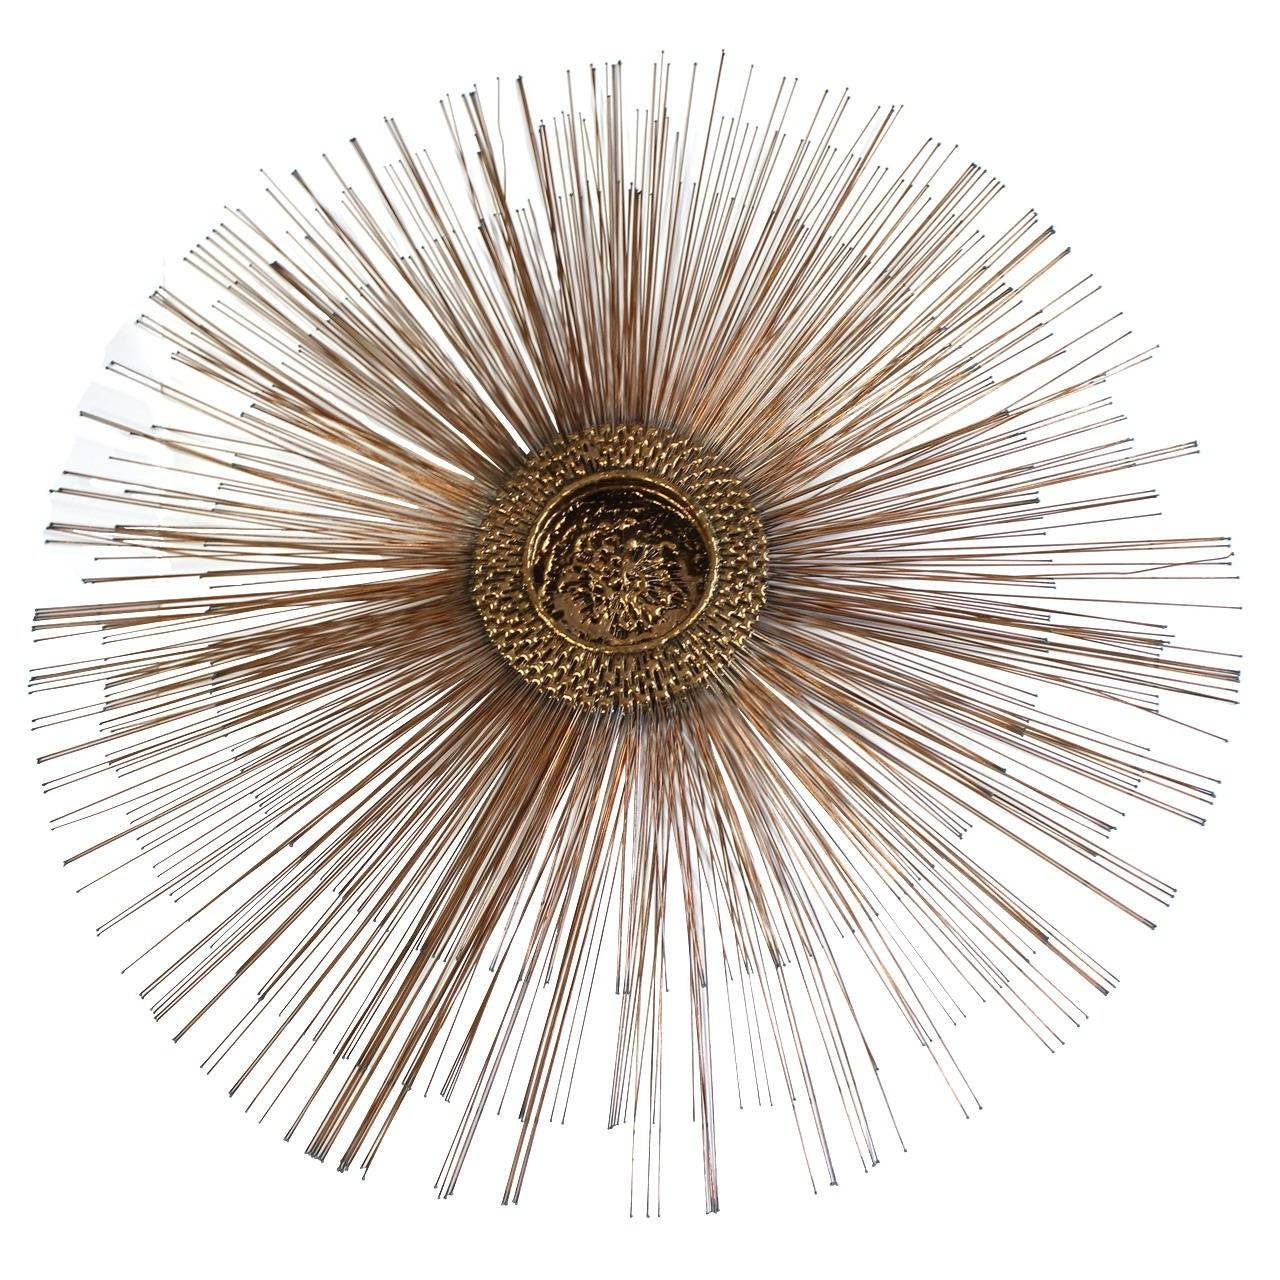 Mid Century Brutalist Copper Sunburst Wall Sculpture For Sale At Throughout Best And Newest Sunburst Metal Wall Art (View 4 of 20)